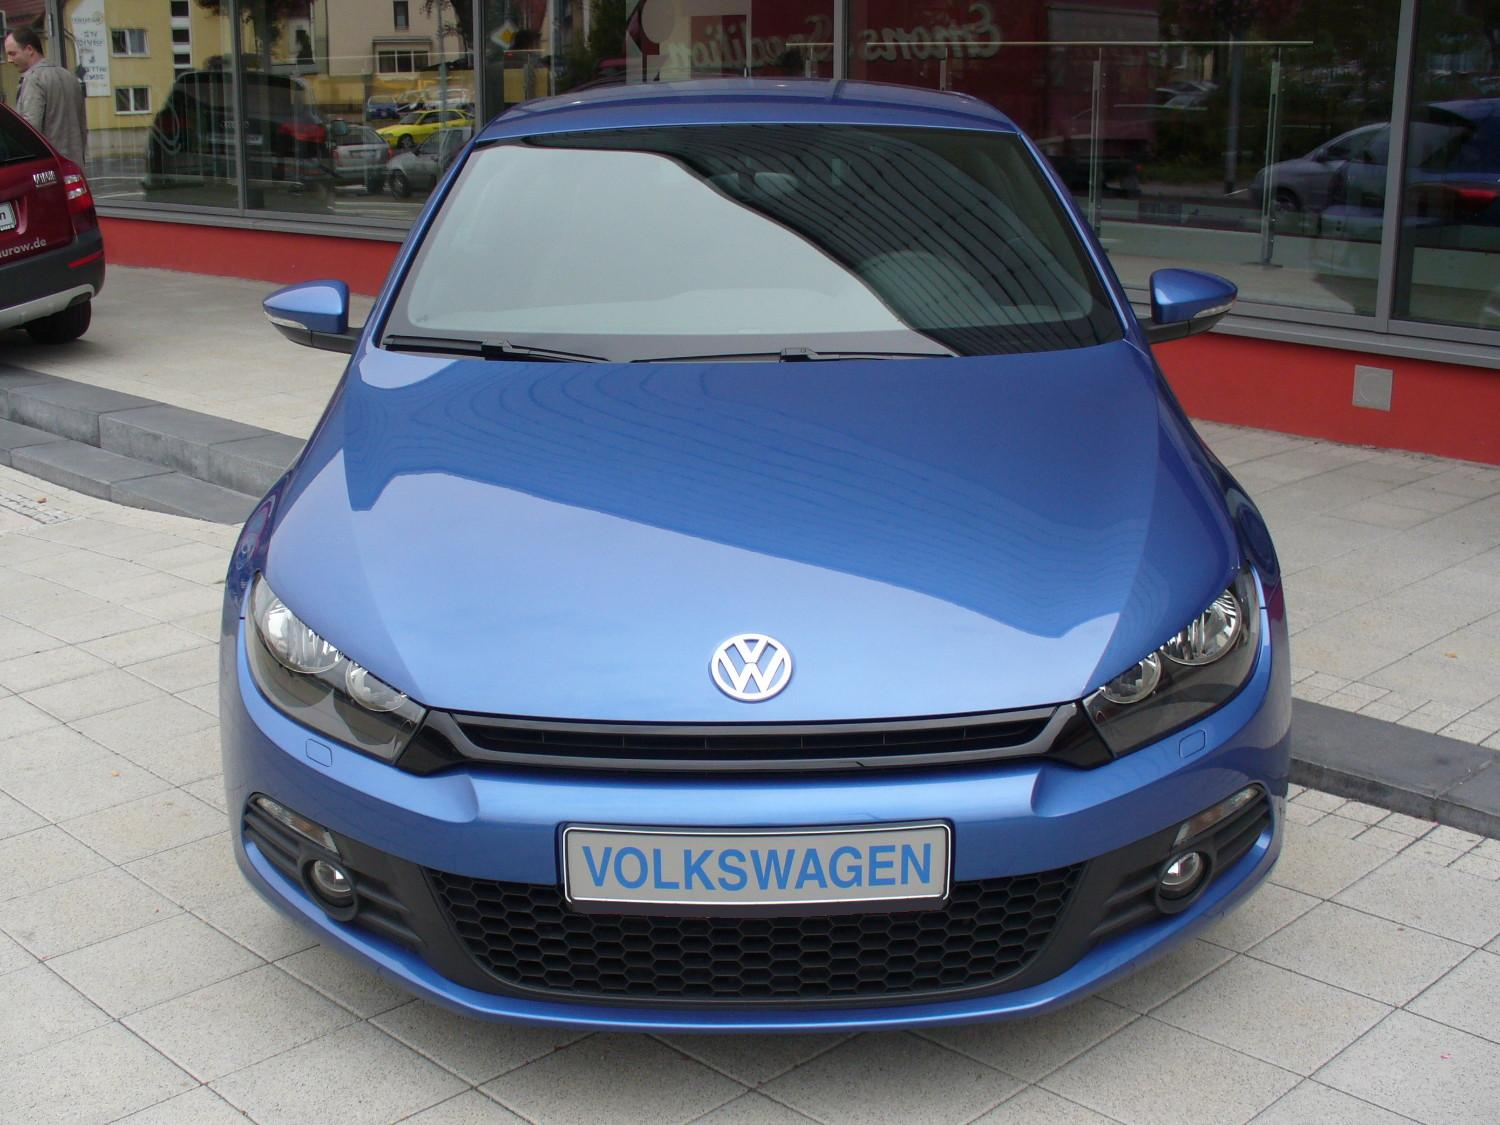 file vw scirocco iii sport 1 4 tsi risingblue front jpg wikimedia commons. Black Bedroom Furniture Sets. Home Design Ideas